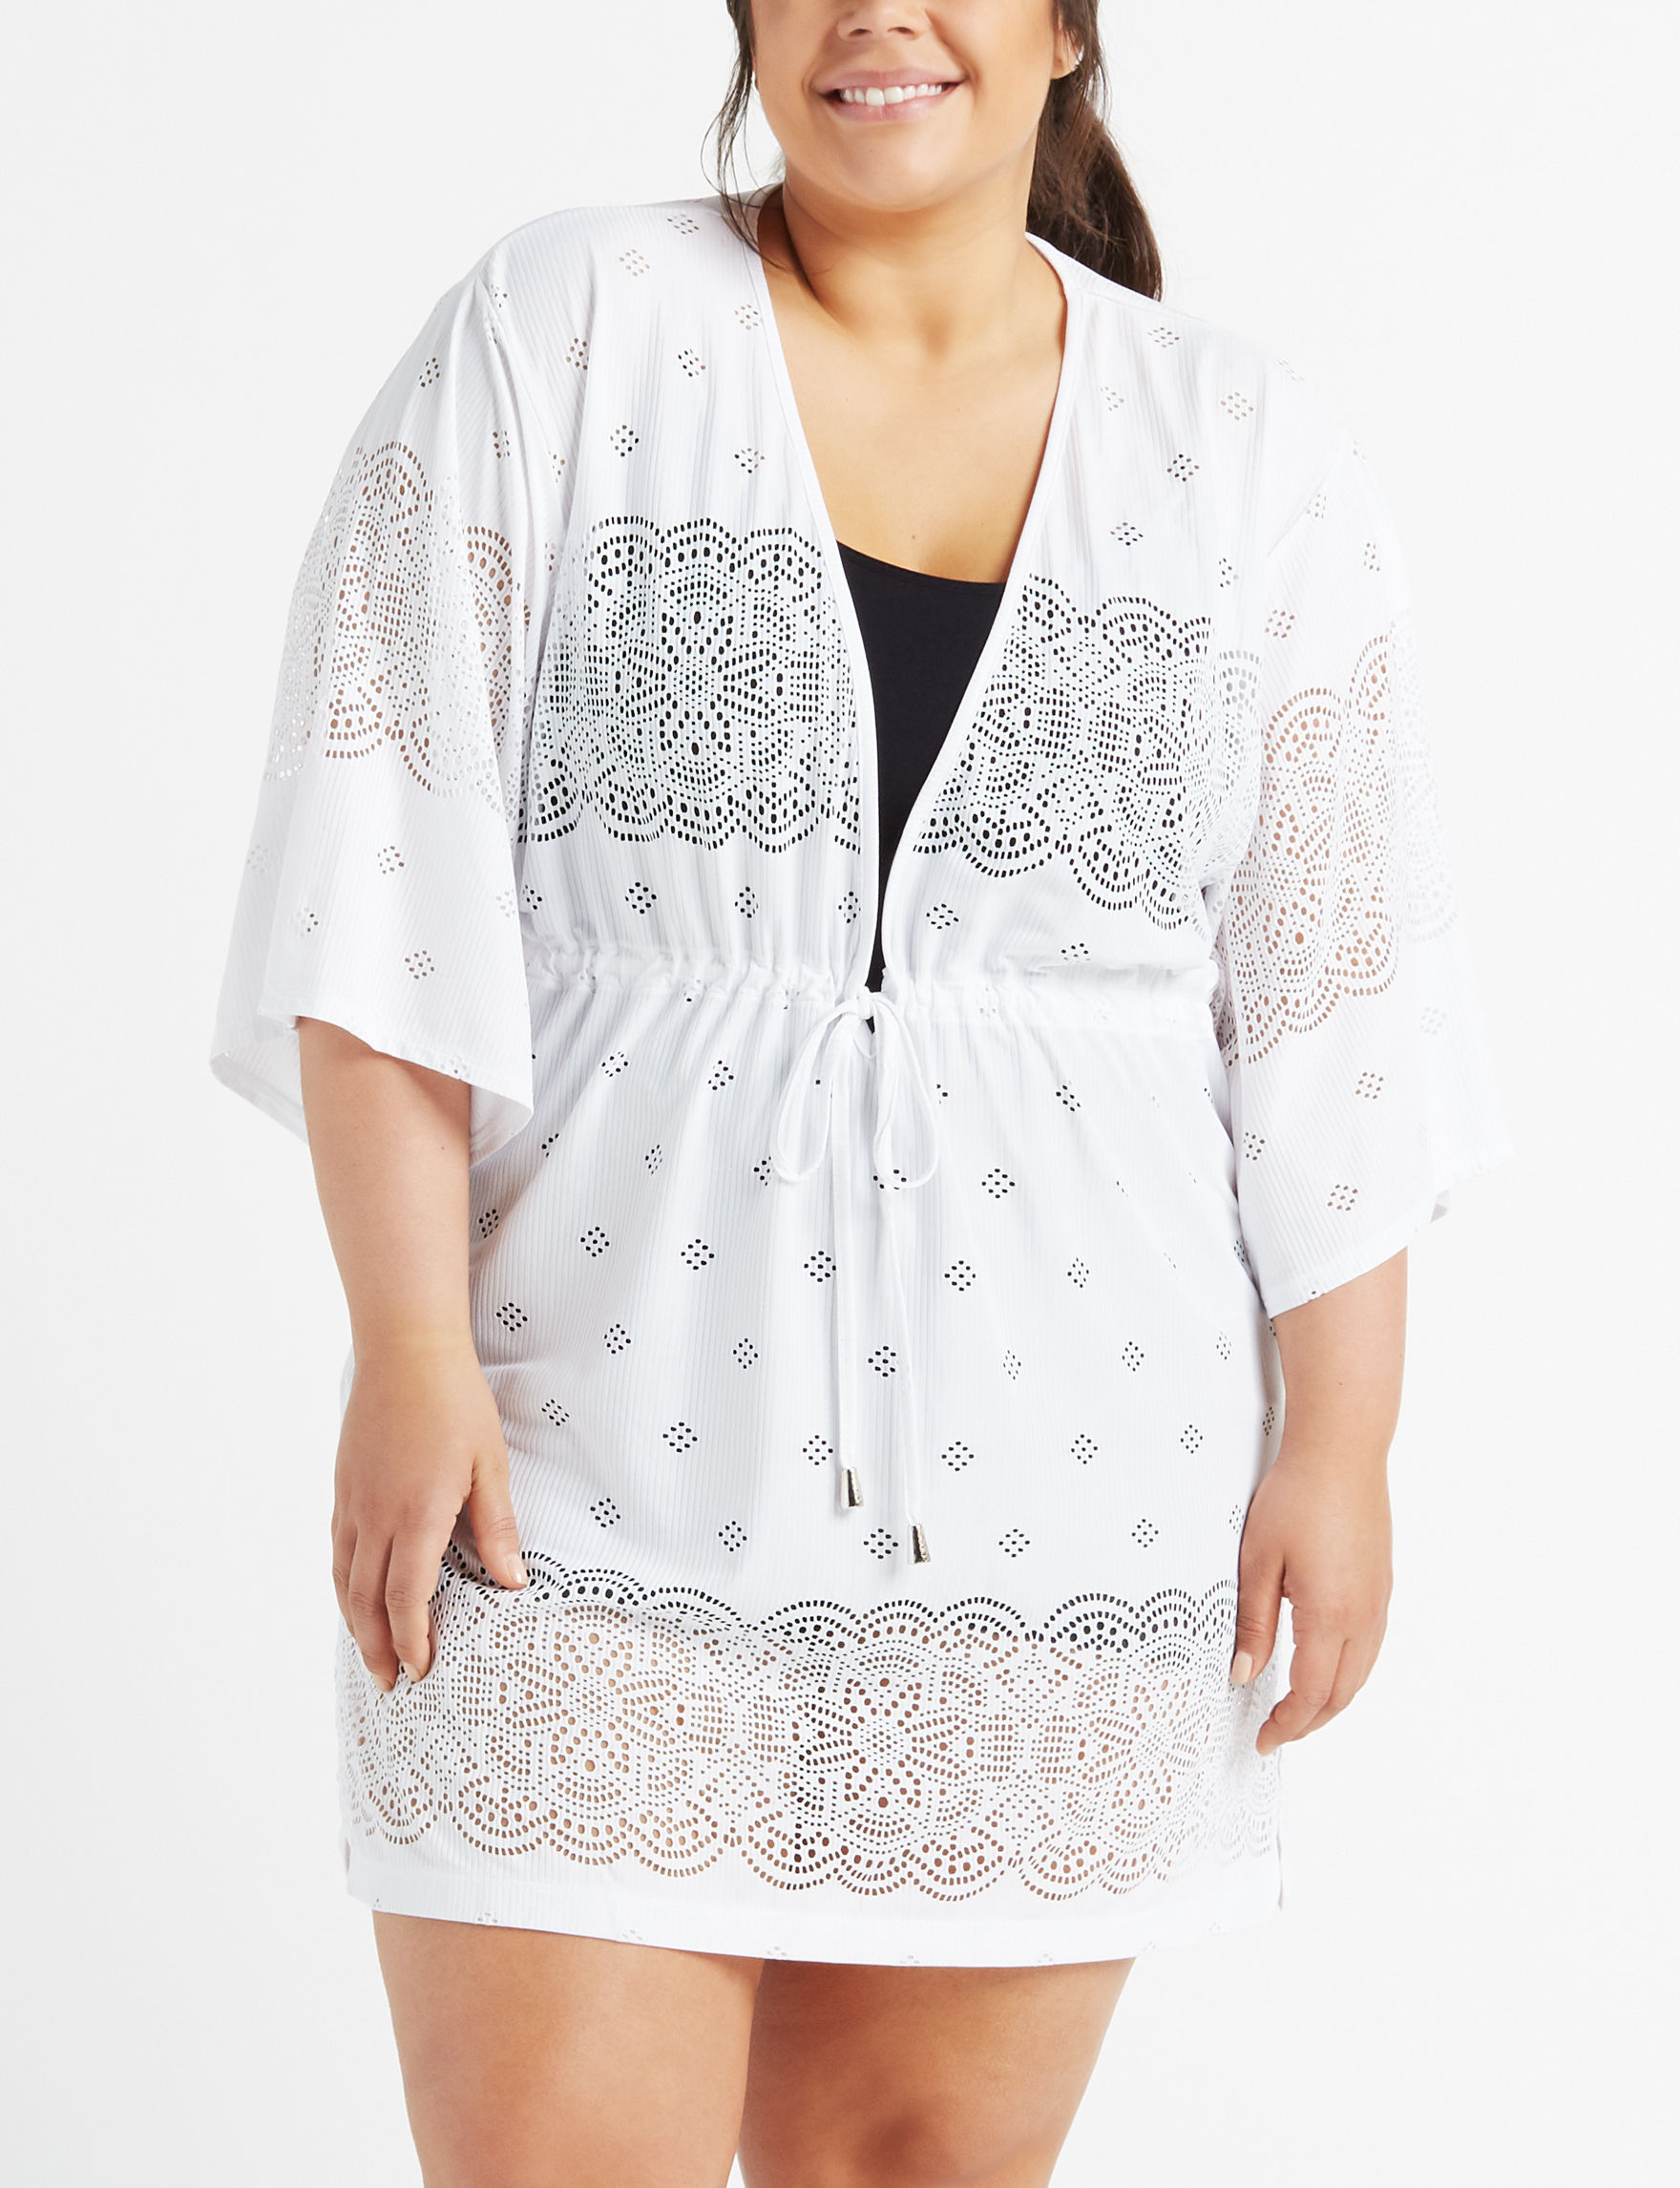 Wearbout White Cover-Ups